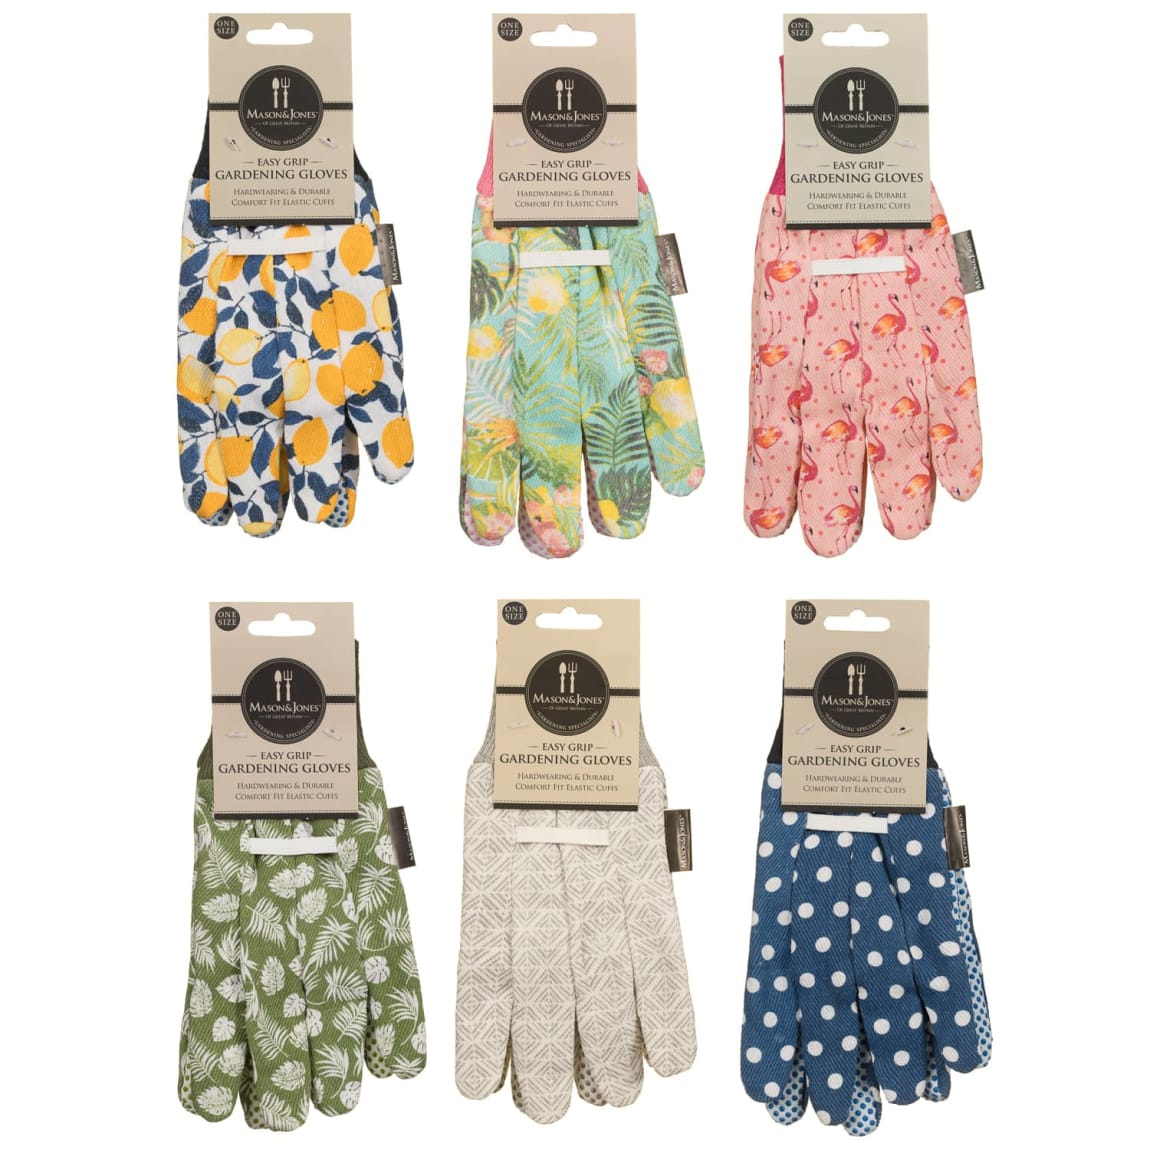 Mason & Jones Easy Grip Gardening Gloves - Flamingos